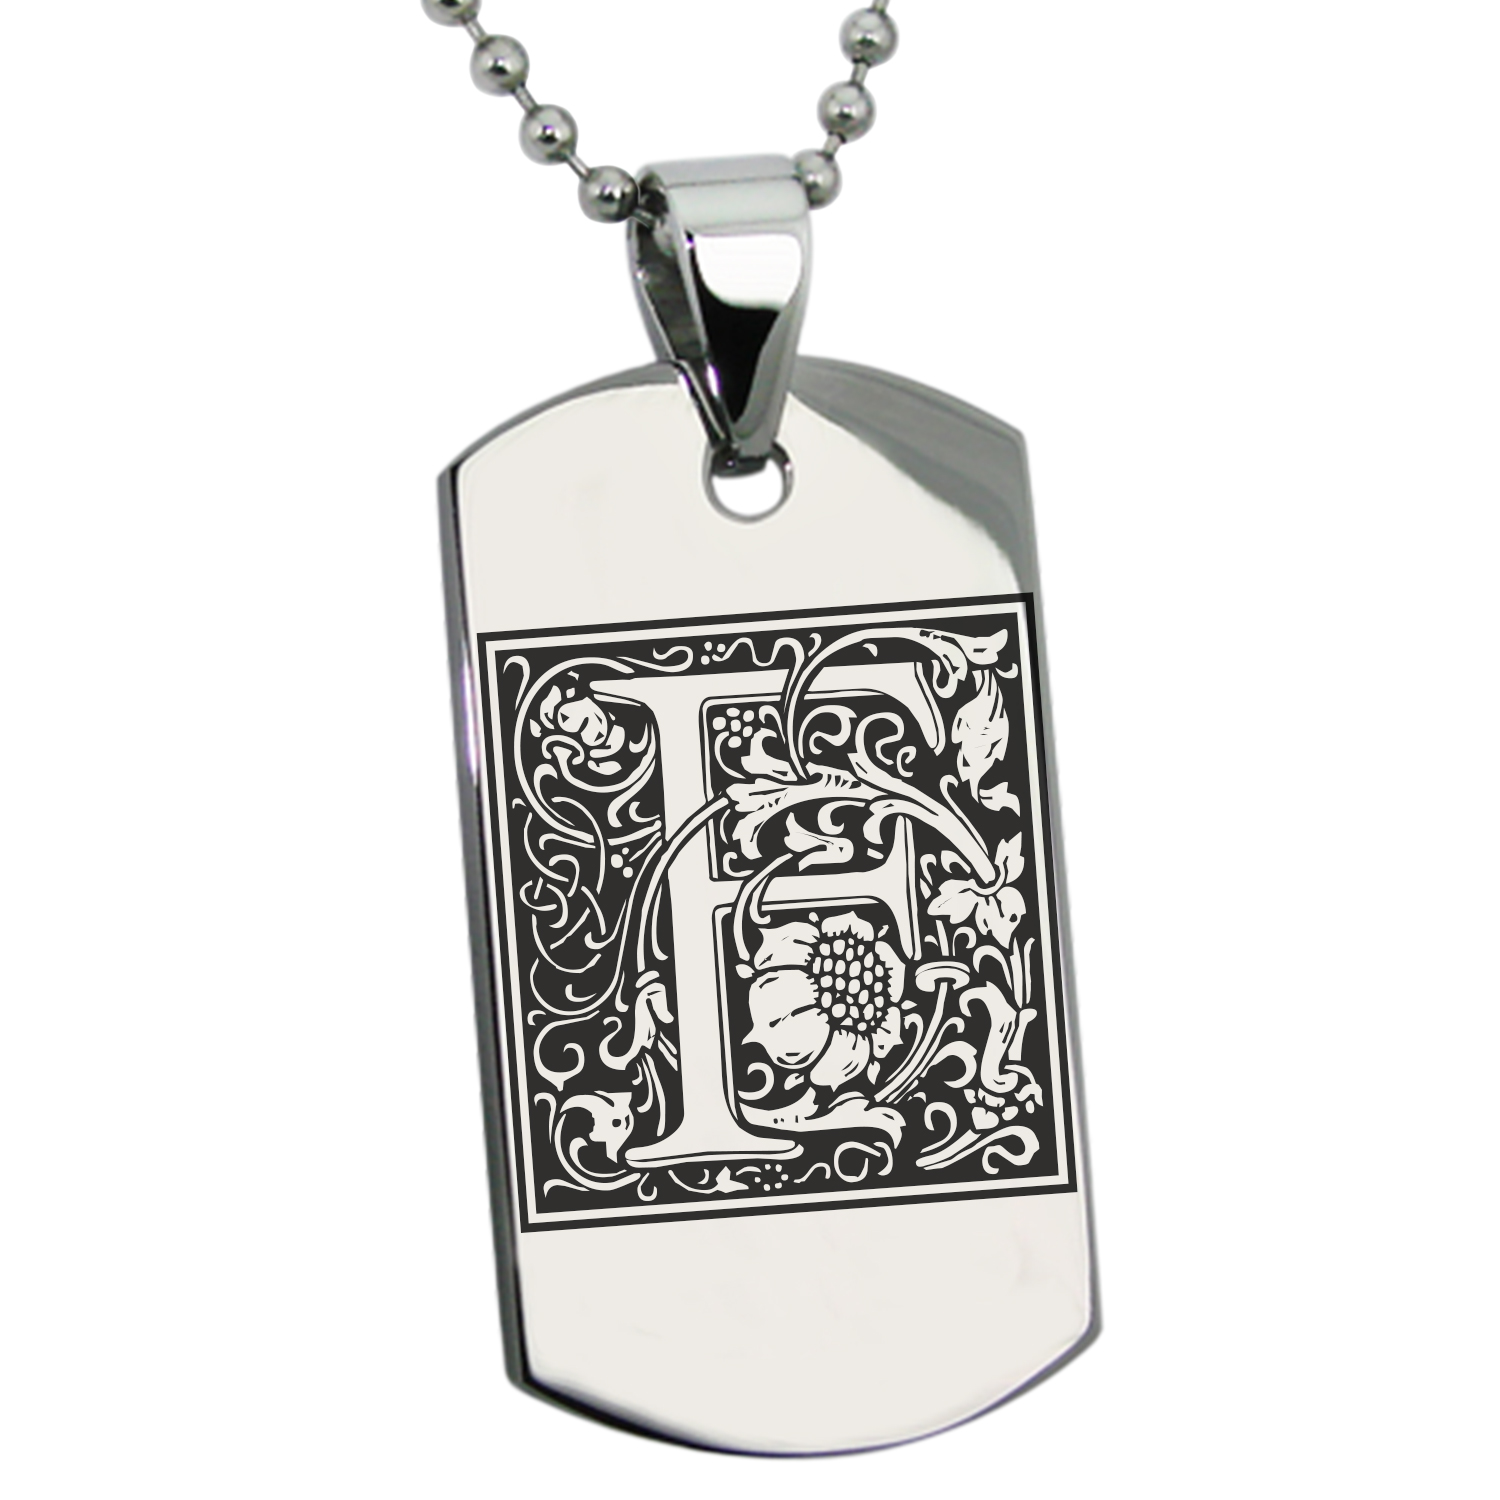 Stainless Steel Letter F Initial Floral Monogram Engraved Dog Tag Pendant